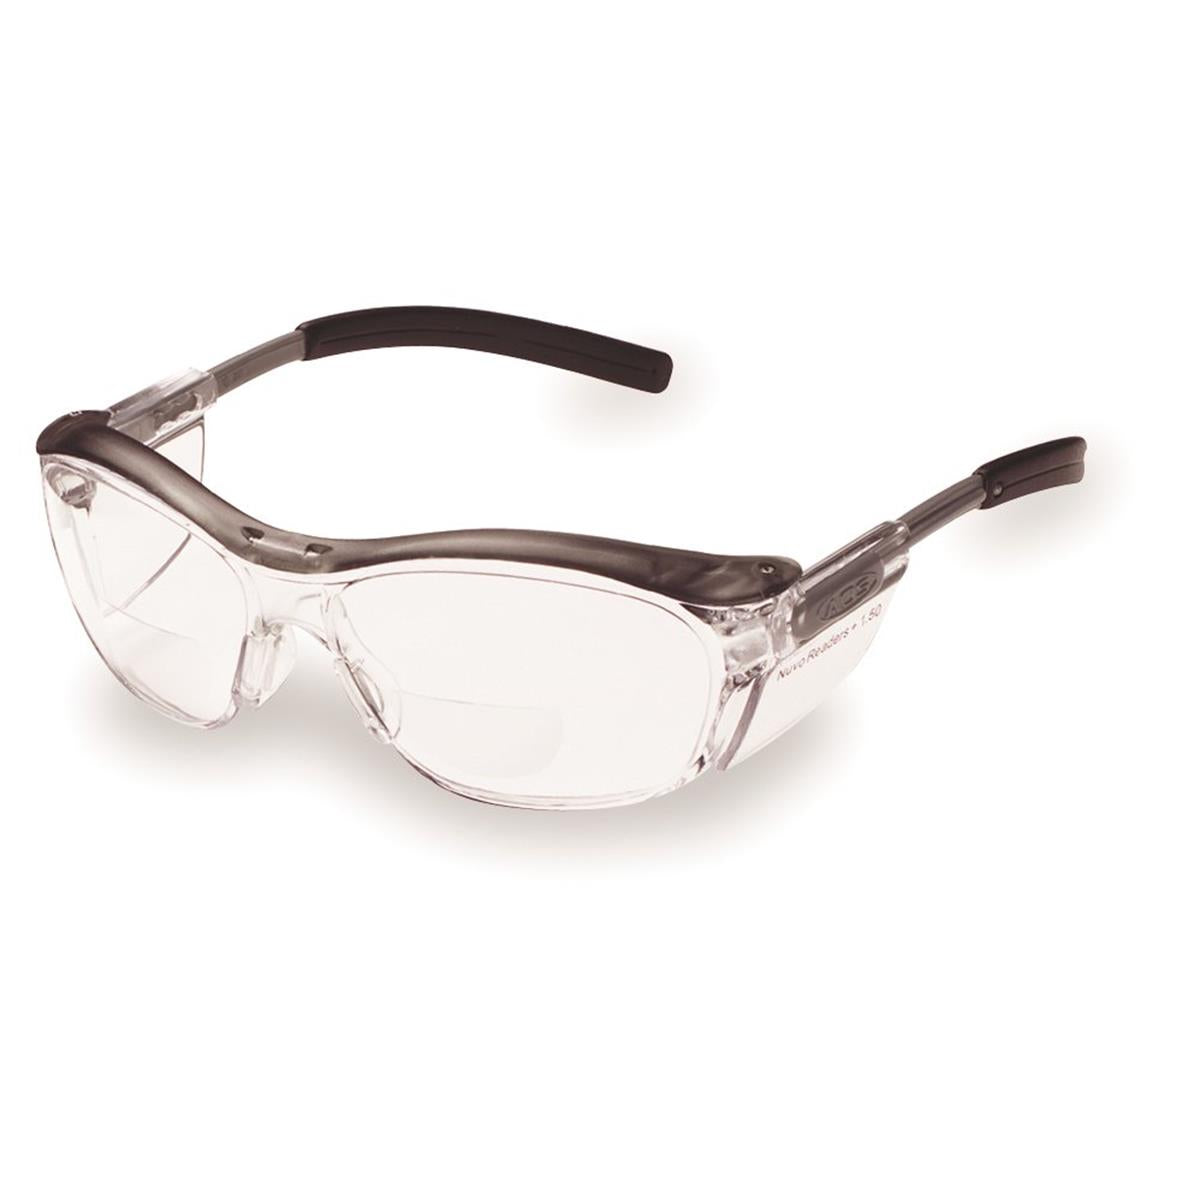 3M Nuvo™ Safety Reading Glasses